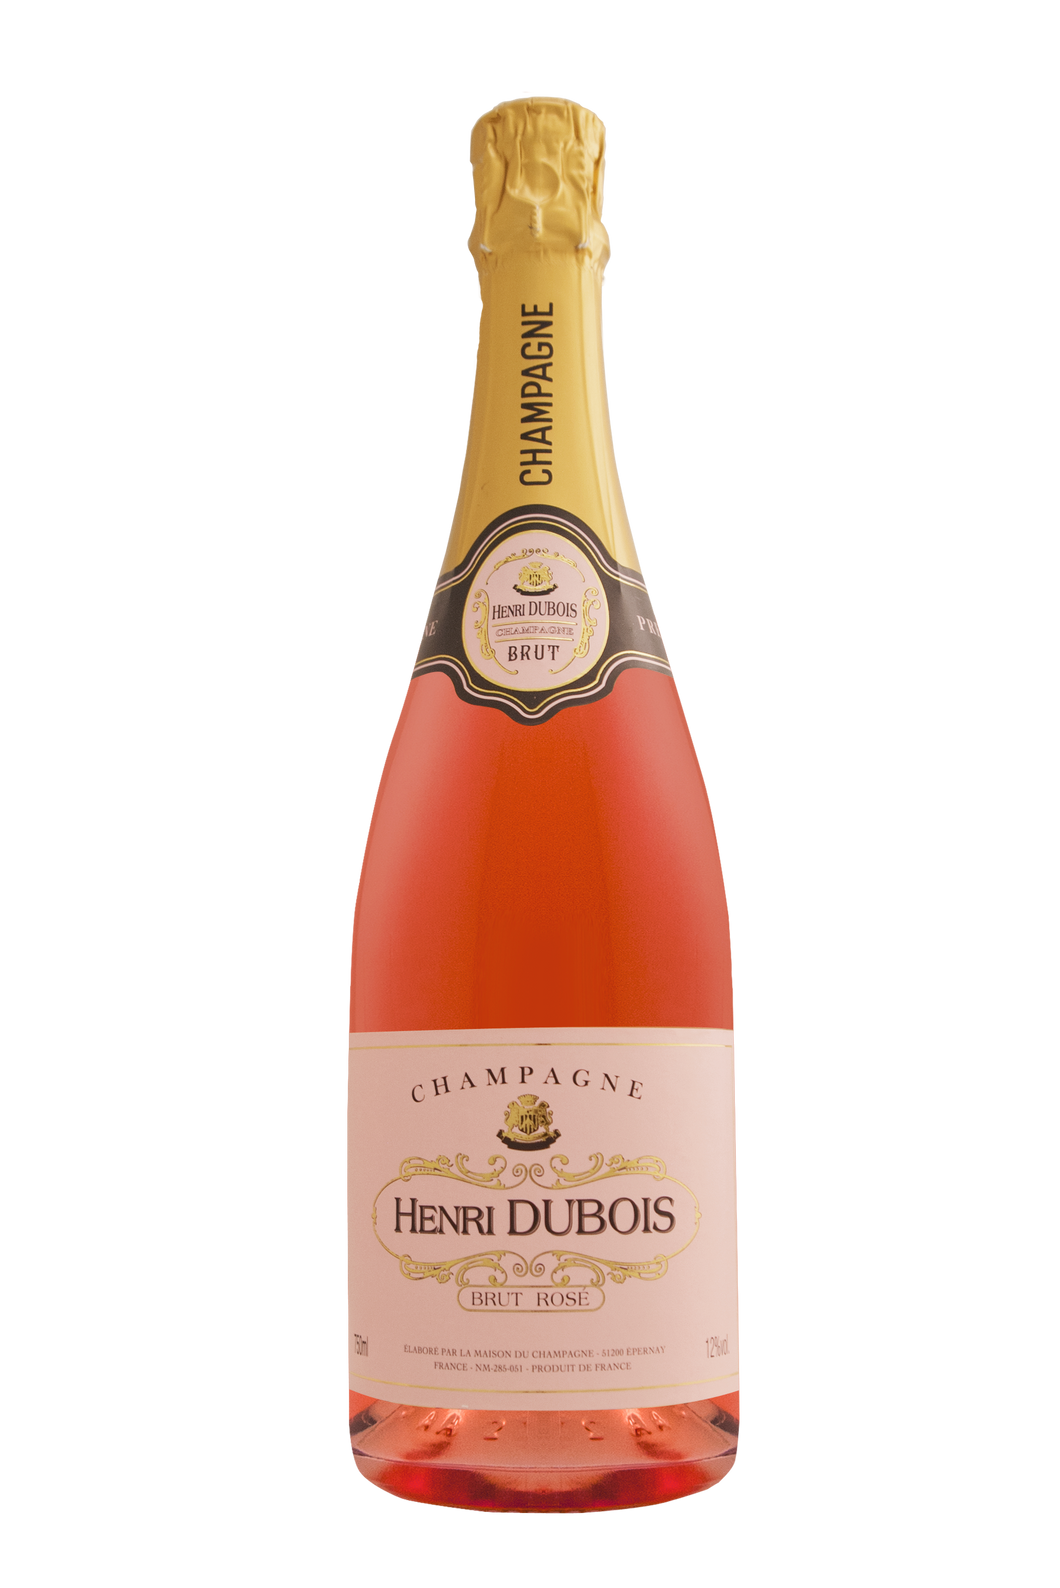 HENRI DUBOIS ROSE NV